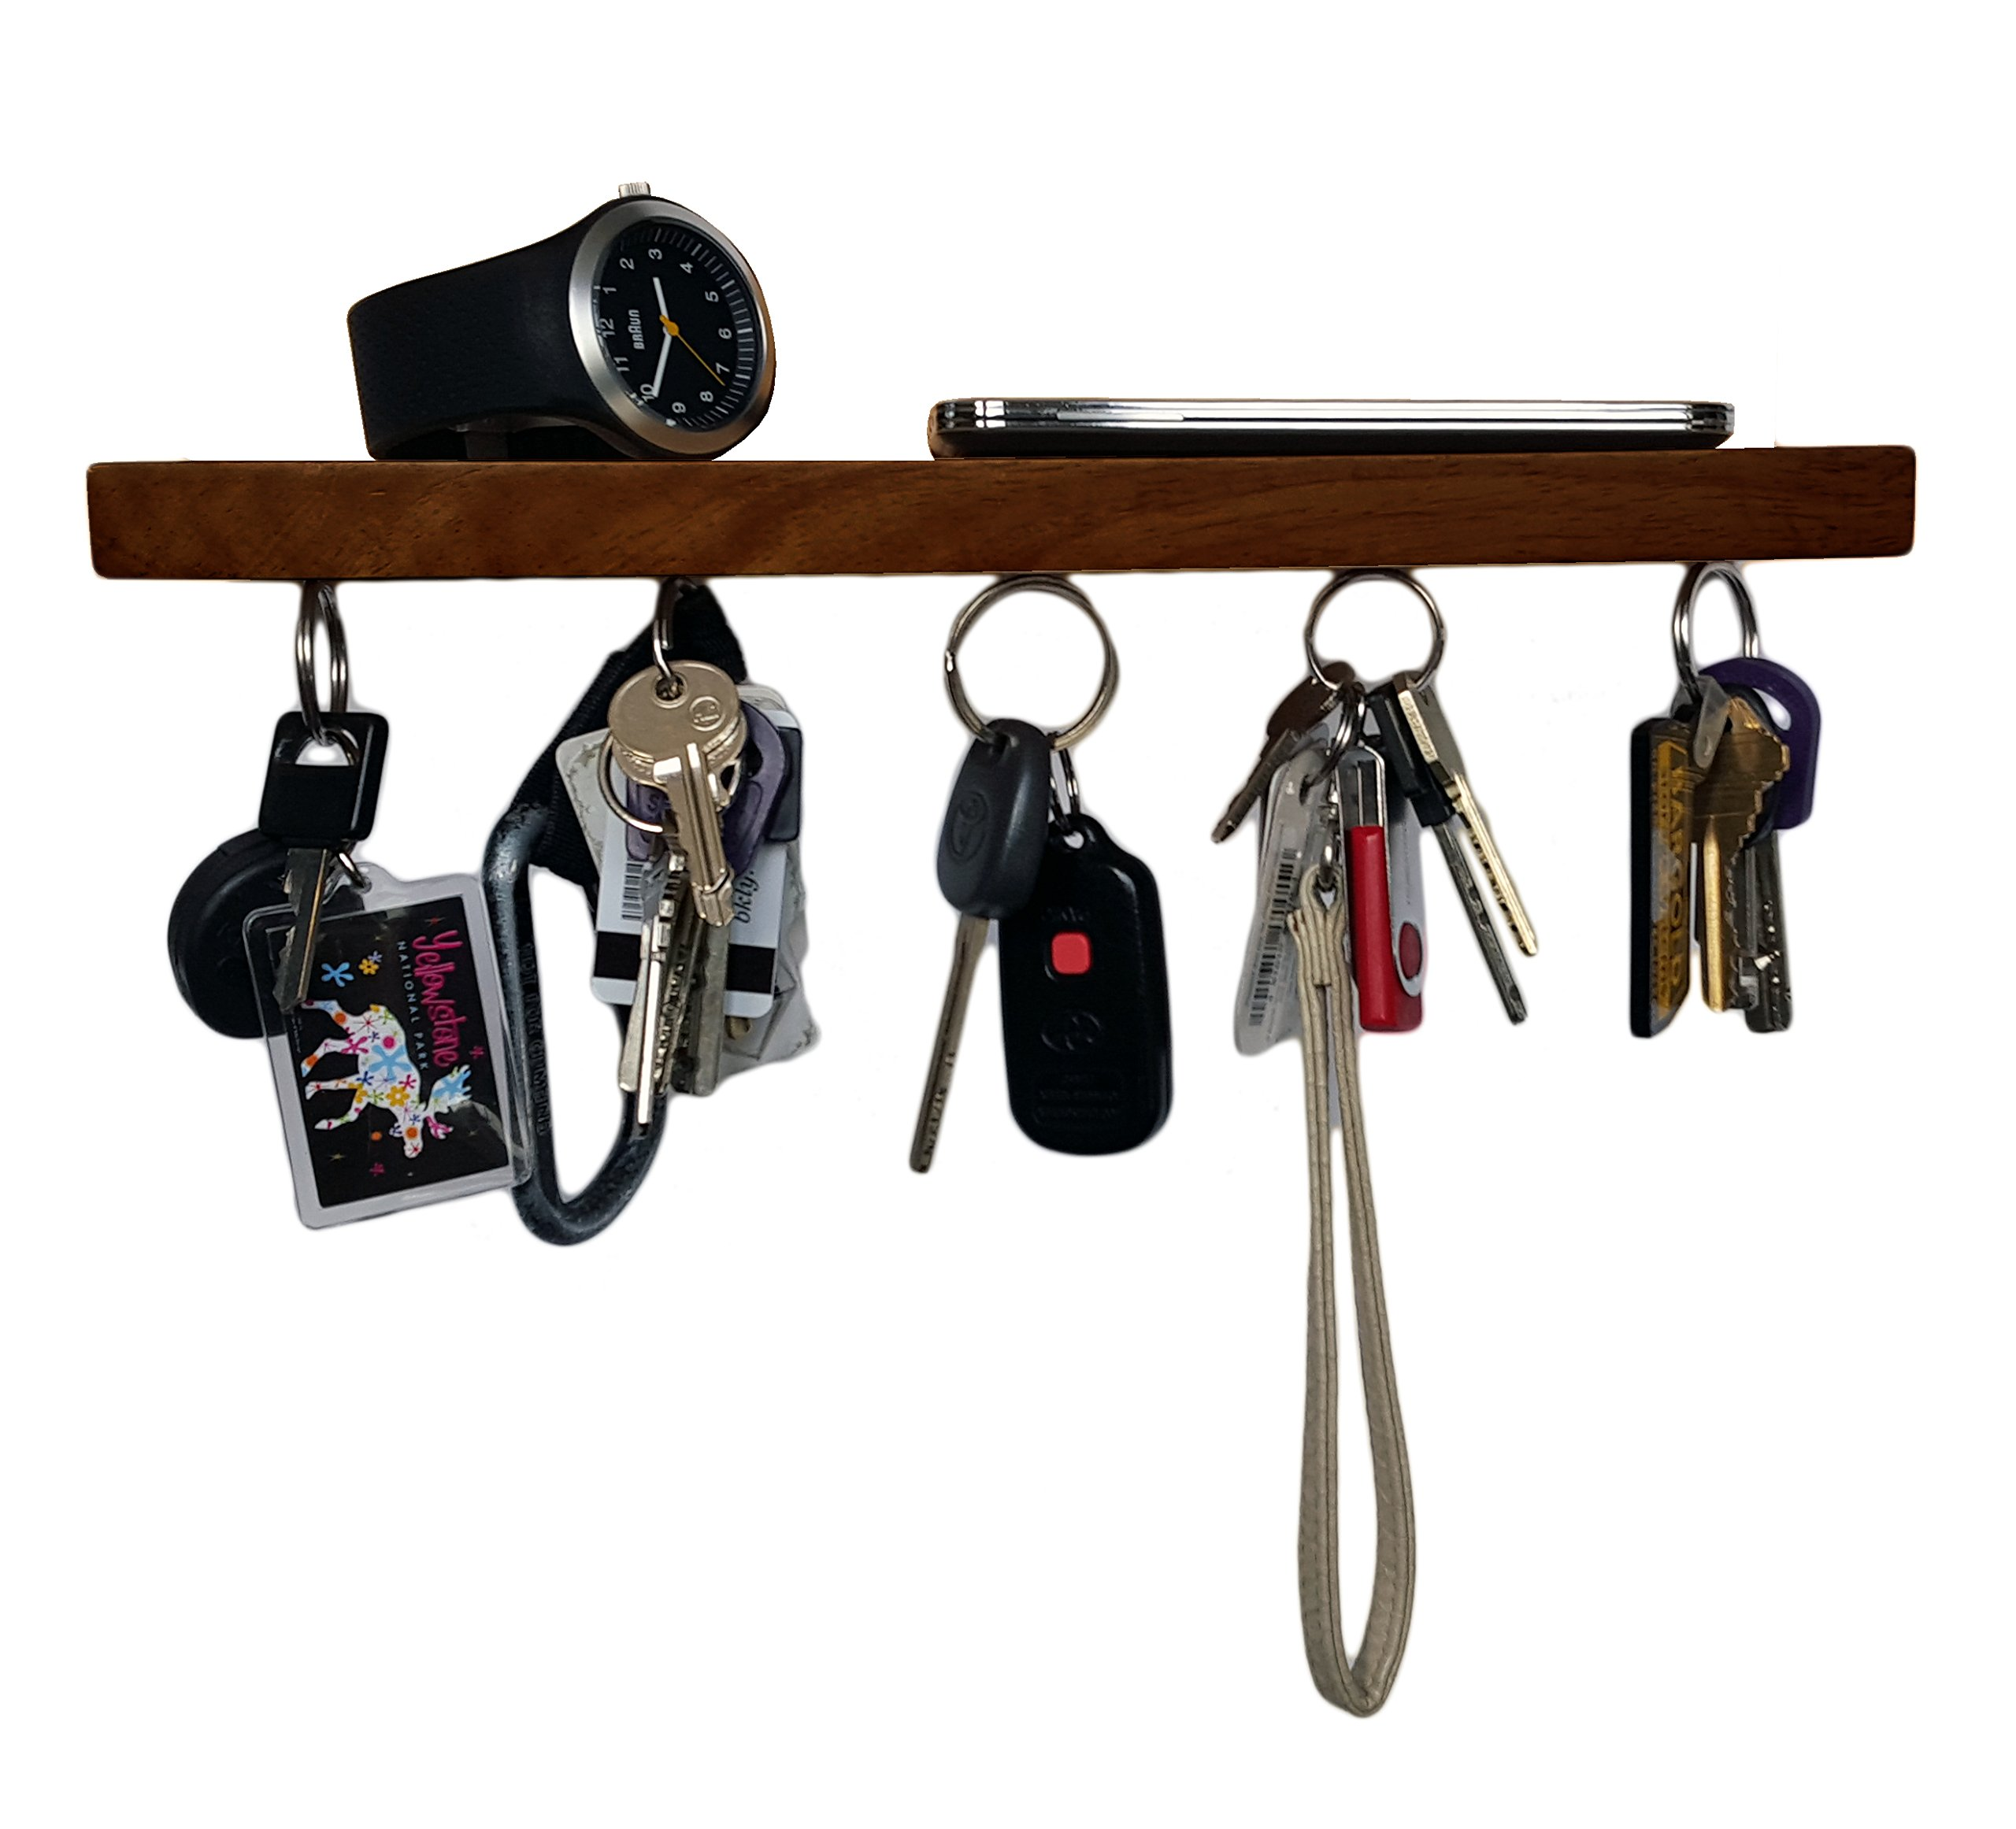 Brooklyn Basix Premium Magnetic ''bar'' Wood Key Ring Holder and Shelf for Mail, Letter, Phone, Wallet, Sunglasses Wall Mounted Organizer Perfect for Mudroom, Entryway, Foyer, Kitchen (Walnut)